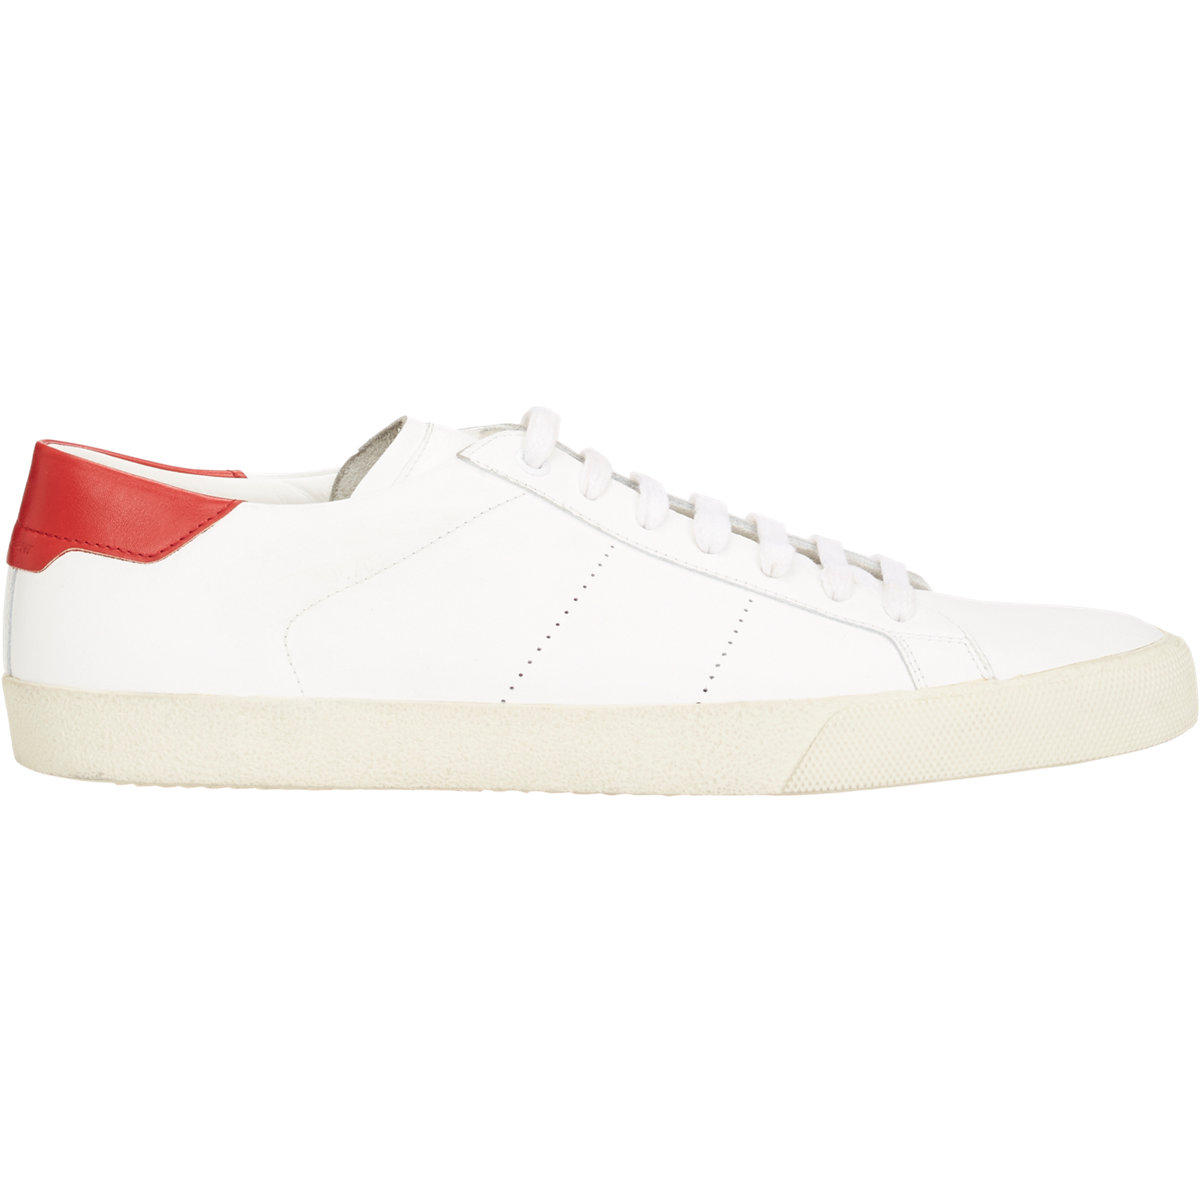 b96e958a3ca6 Lyst - Saint Laurent Sl 06 Court Classic Sneakers in White for Men